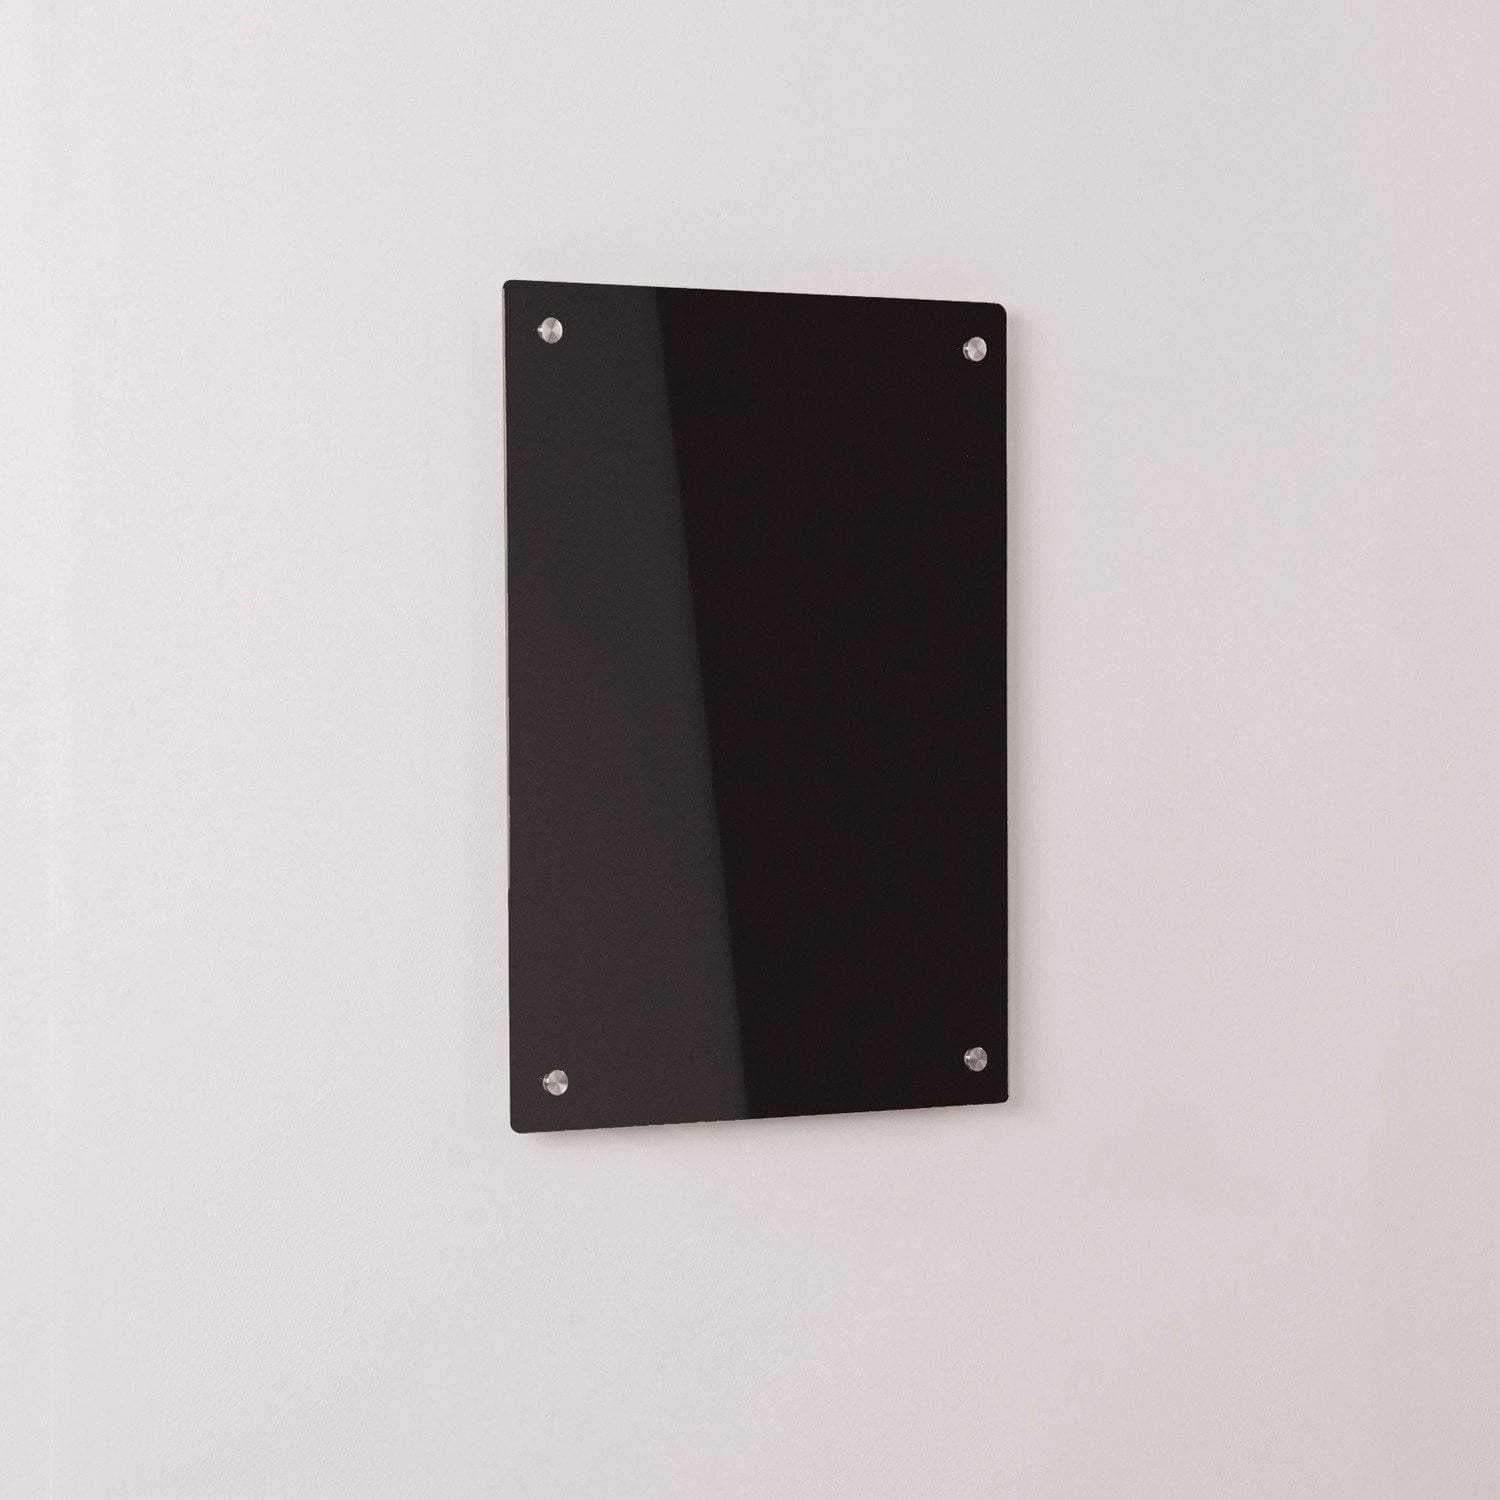 whiteboards w500 x h500 mm Coloured Glass Information Boards w500 x h500 mm